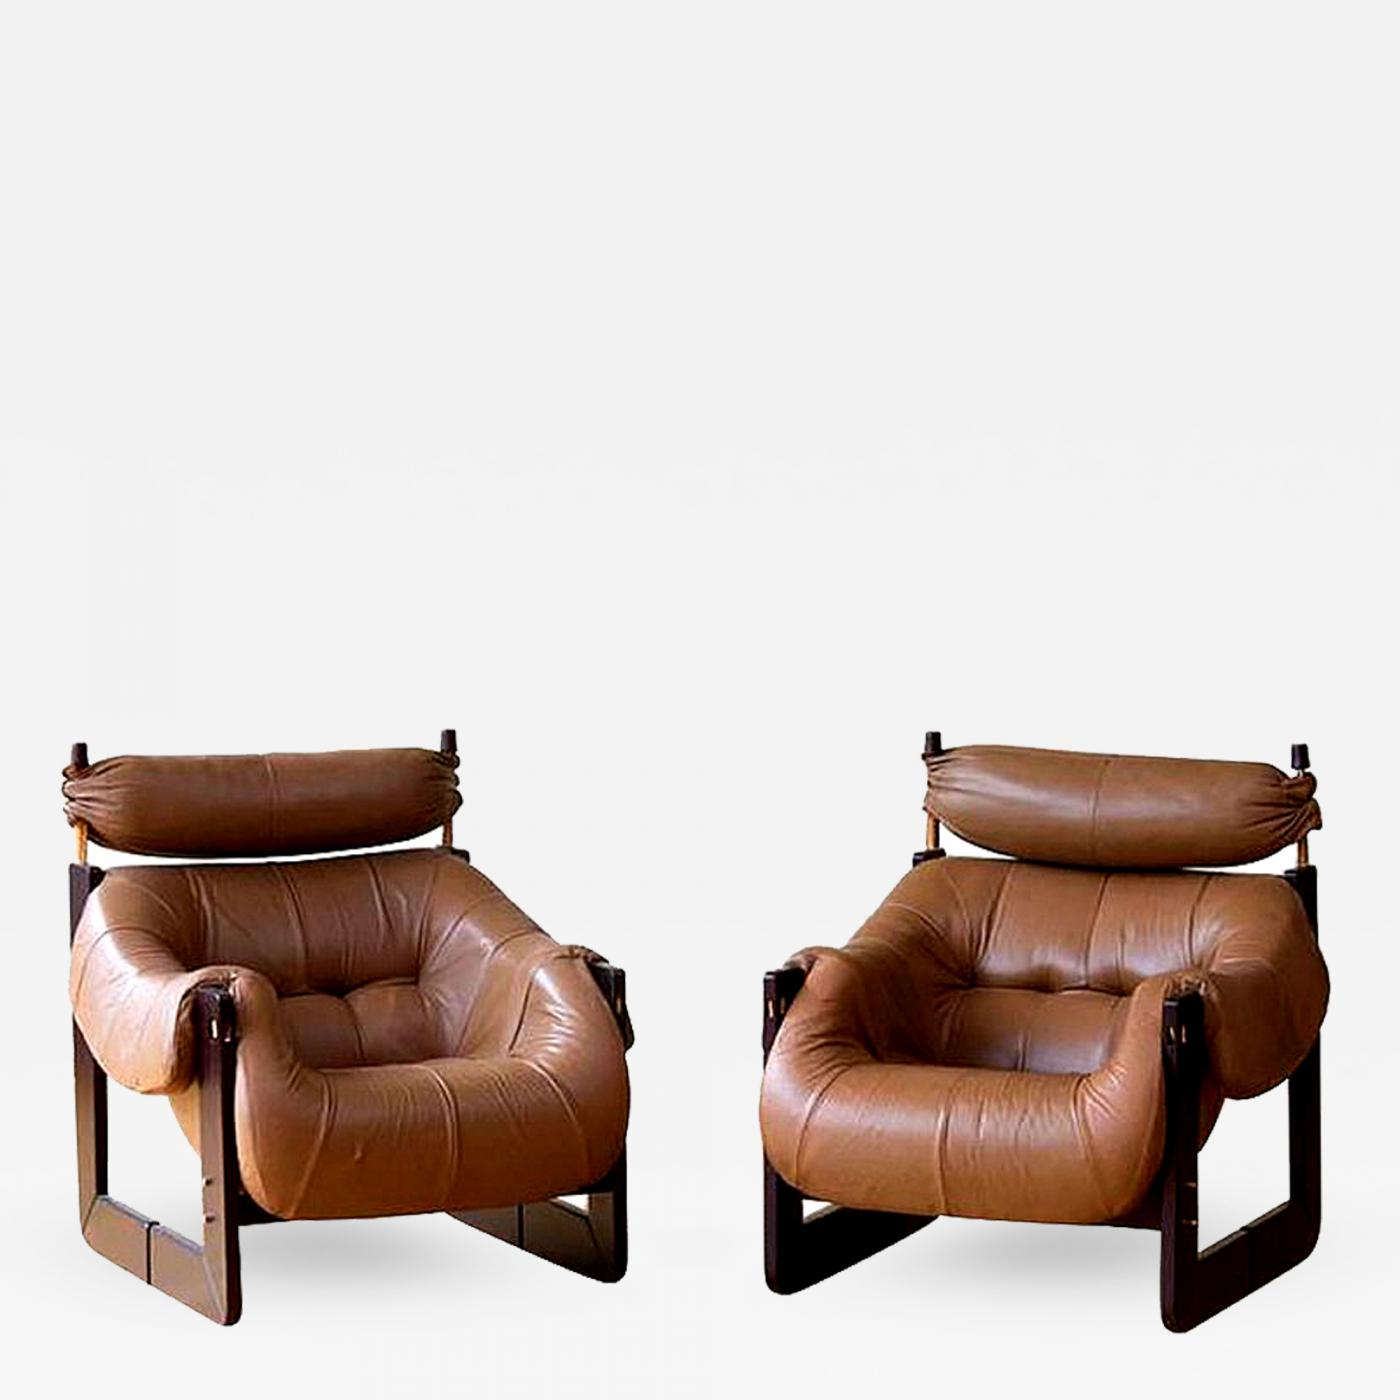 Genial Listings / Furniture / Seating / Club Chairs